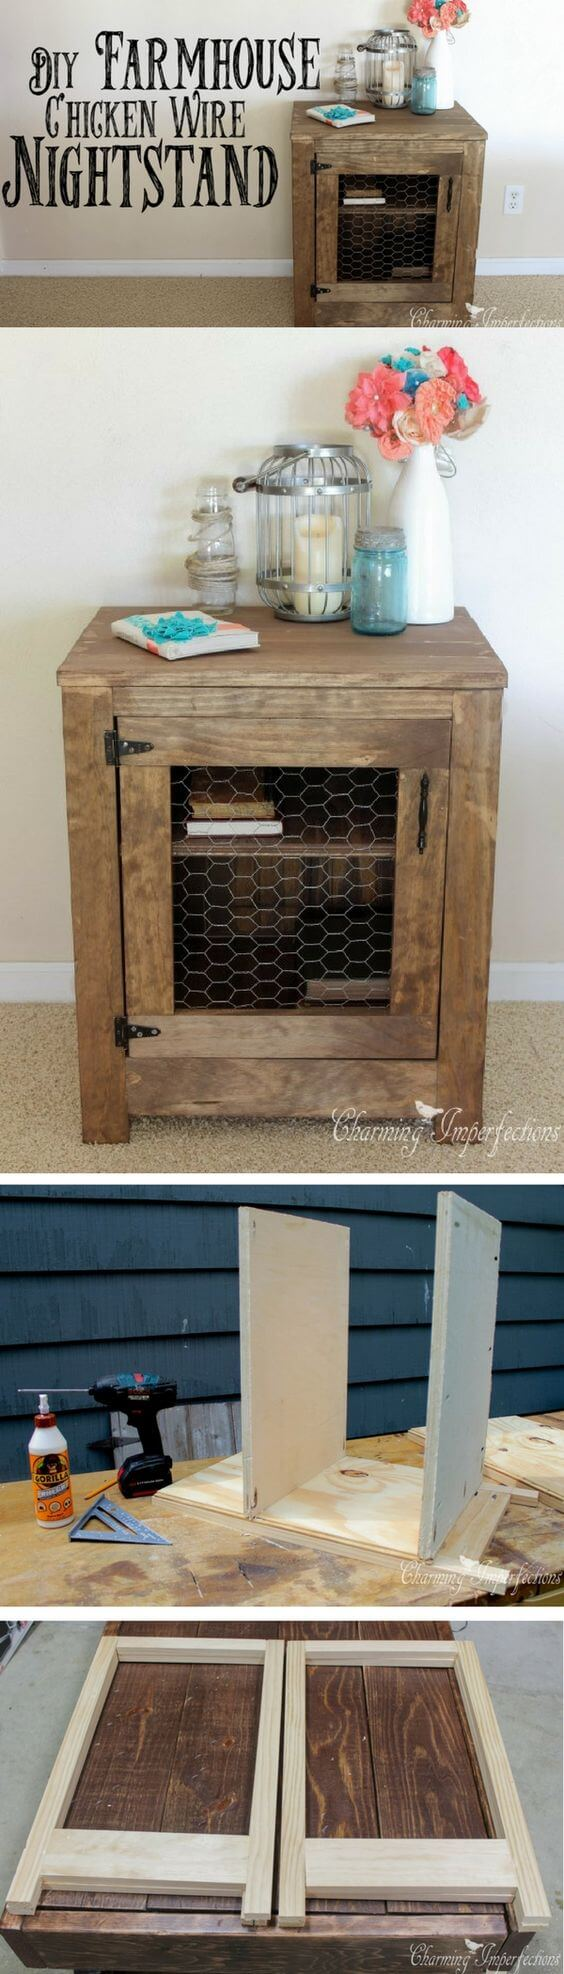 Country Farmhouse Nightstand Exudes Hominess